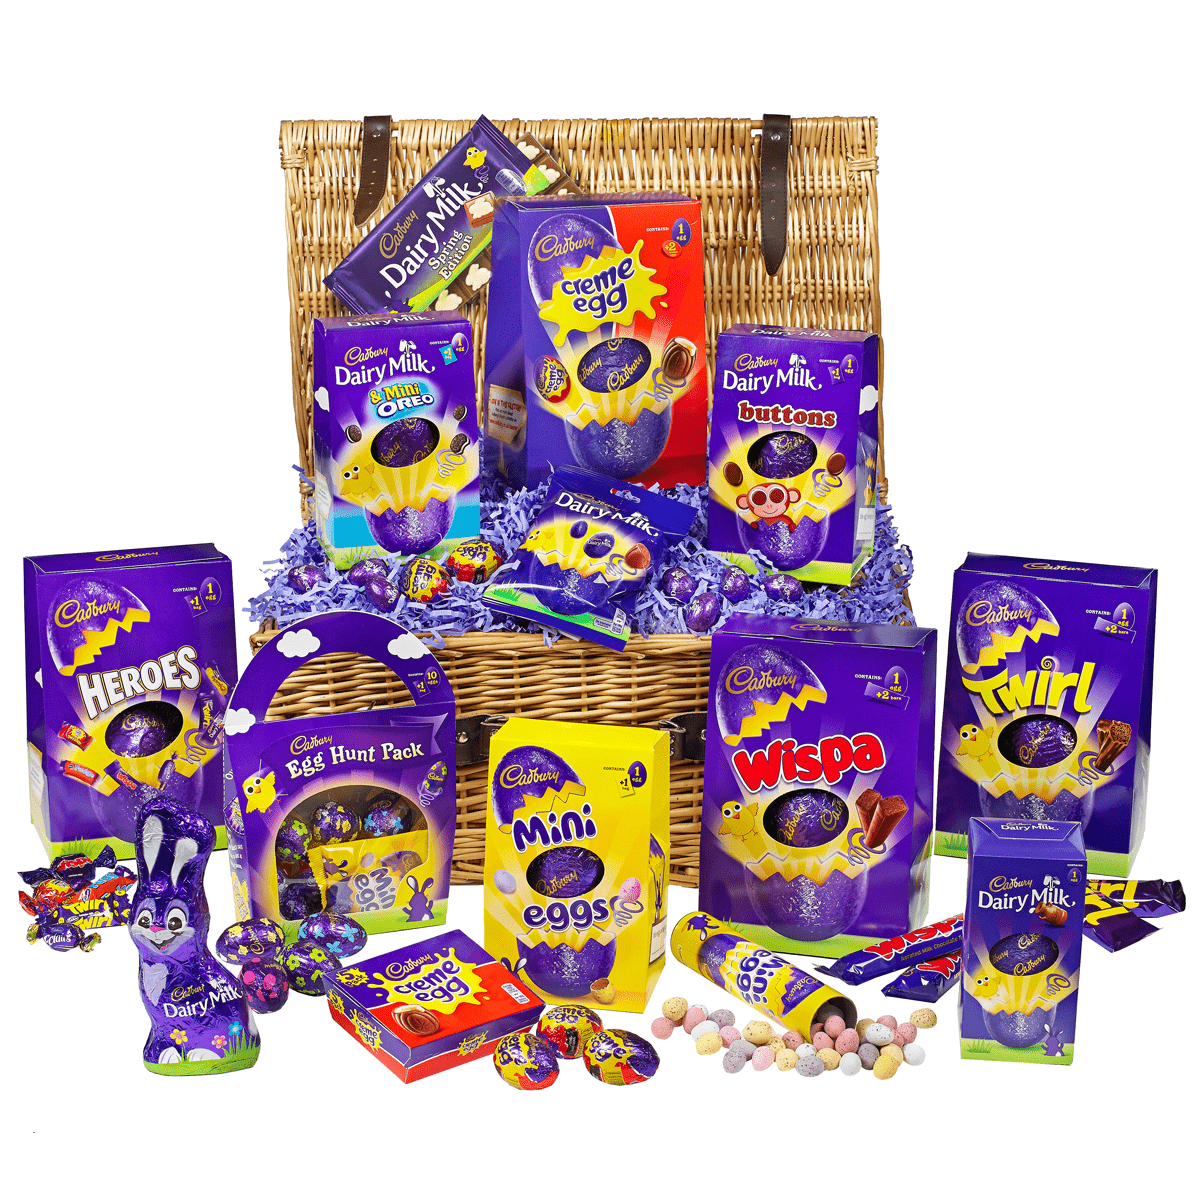 Easter Eggstravaganza (sorry!) Giveaway!!